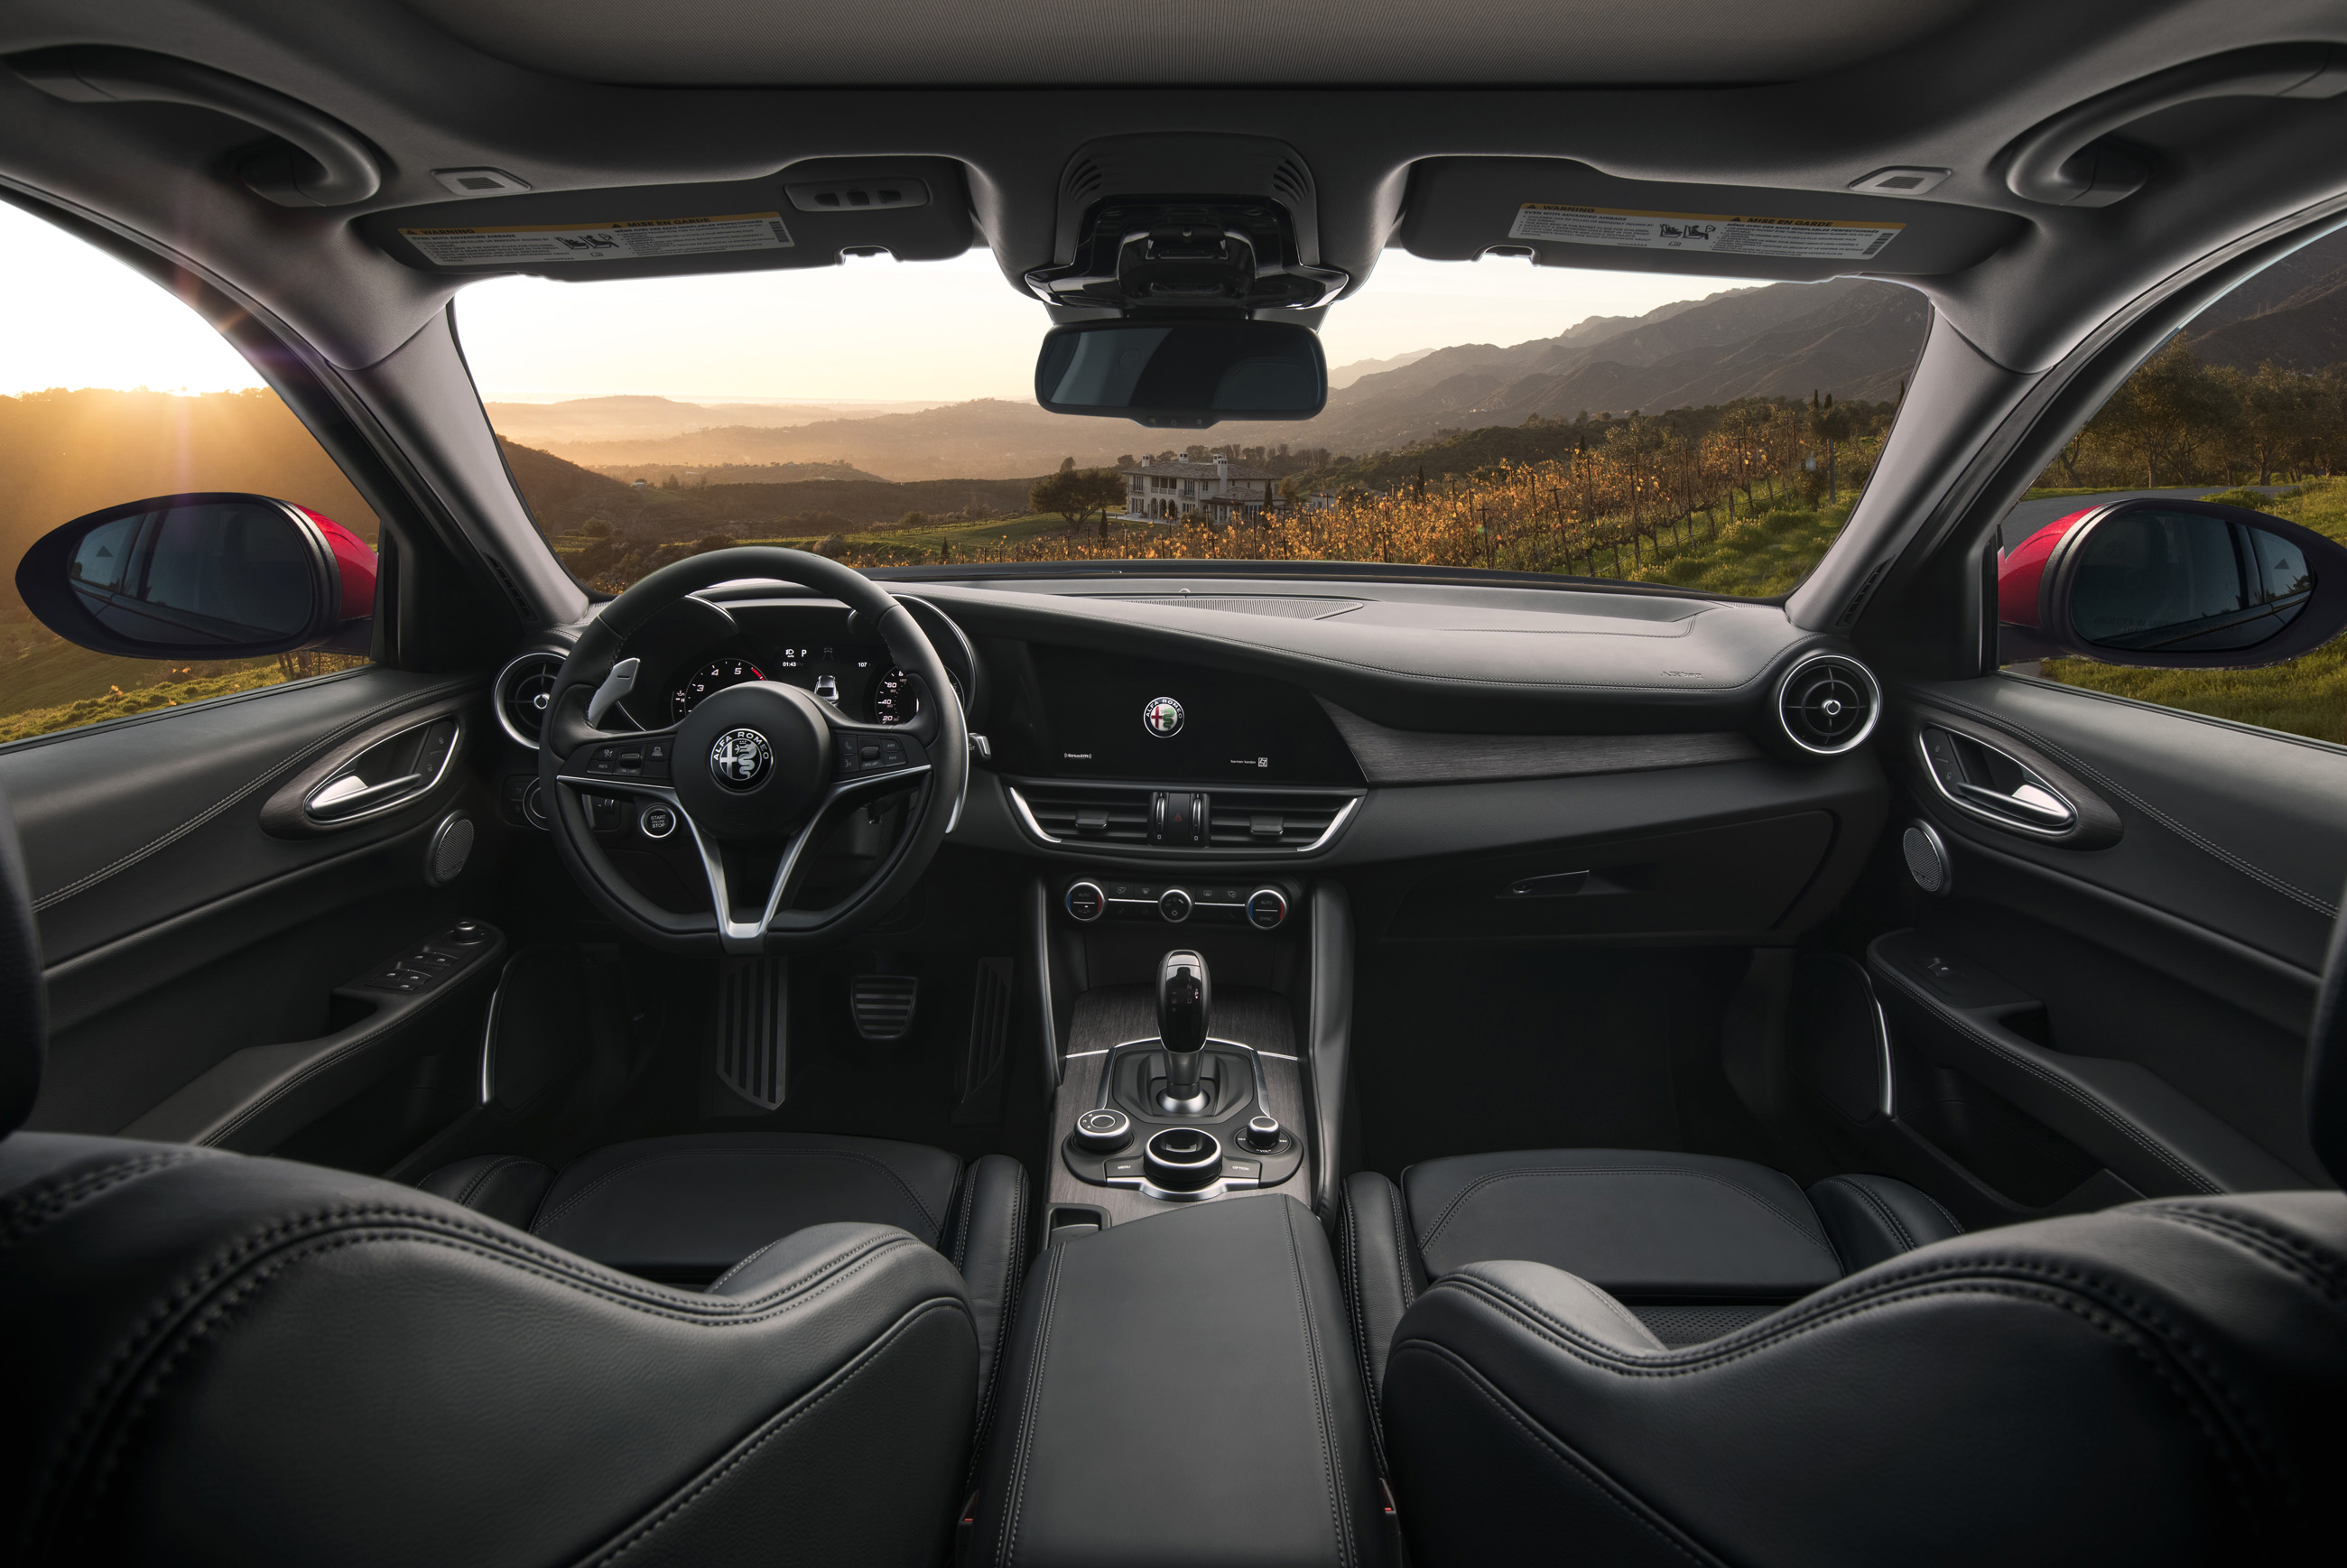 Kyle_retouched_final_23S_Alfa_Interior_fnl_opt